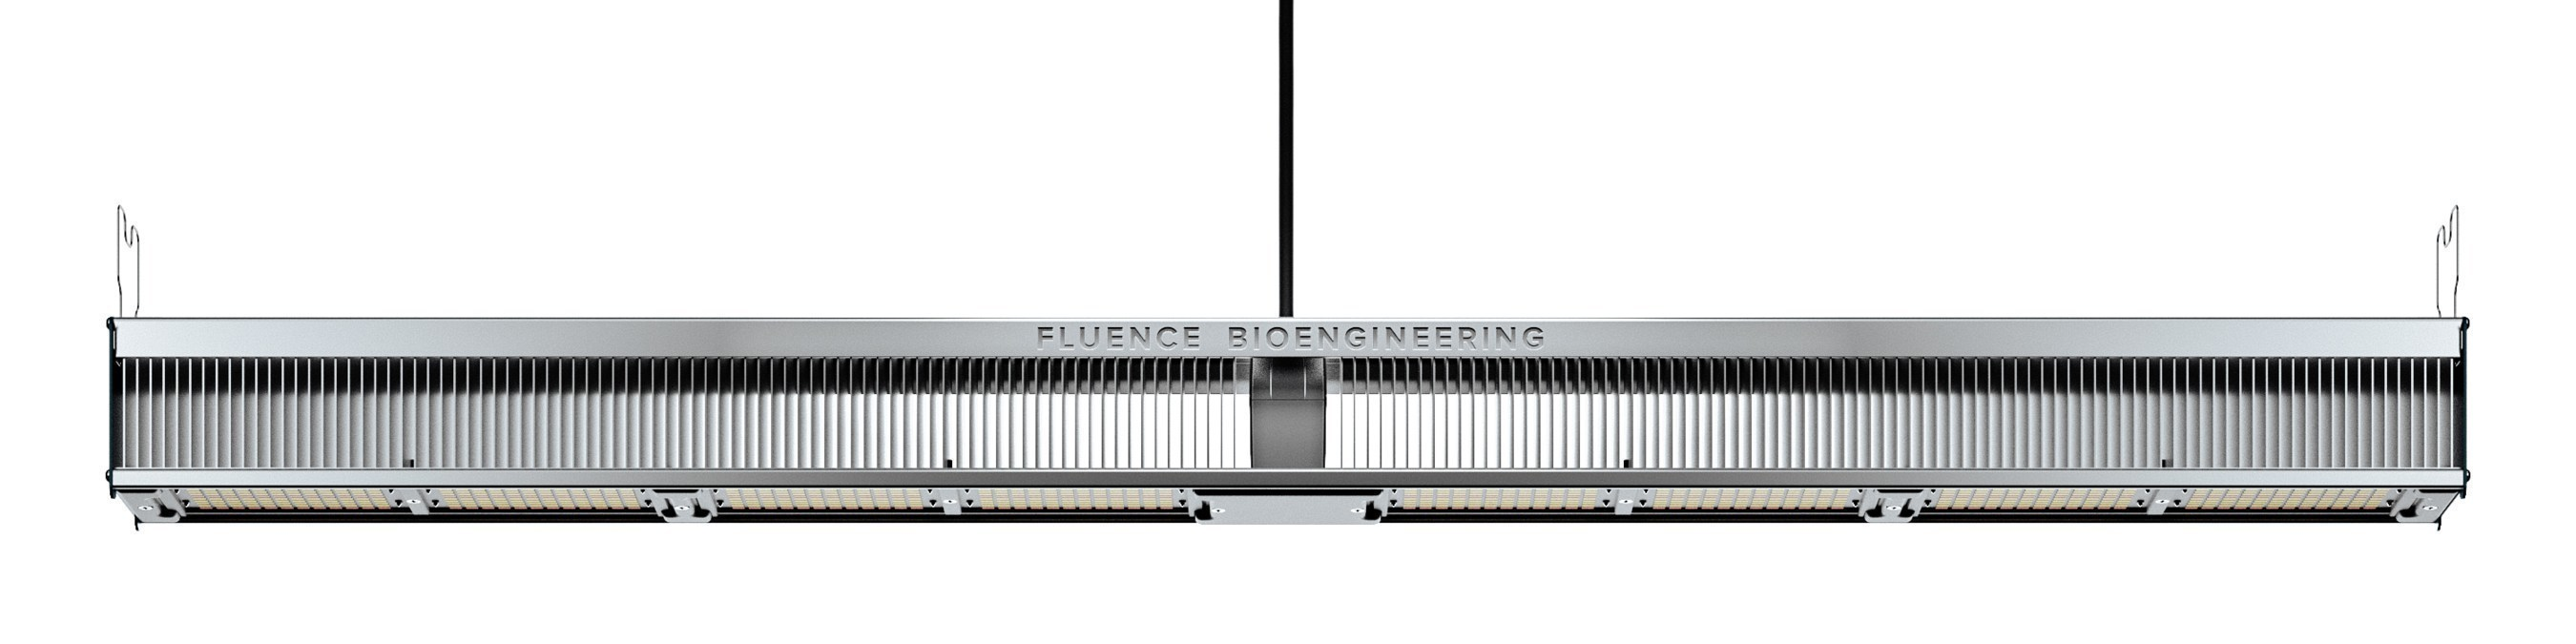 With a patent-pending thermal management system, Fluence VYPRx PLUS is a passively cooled, LED-based lighting system for indoor and greenhouse horticulture environments.